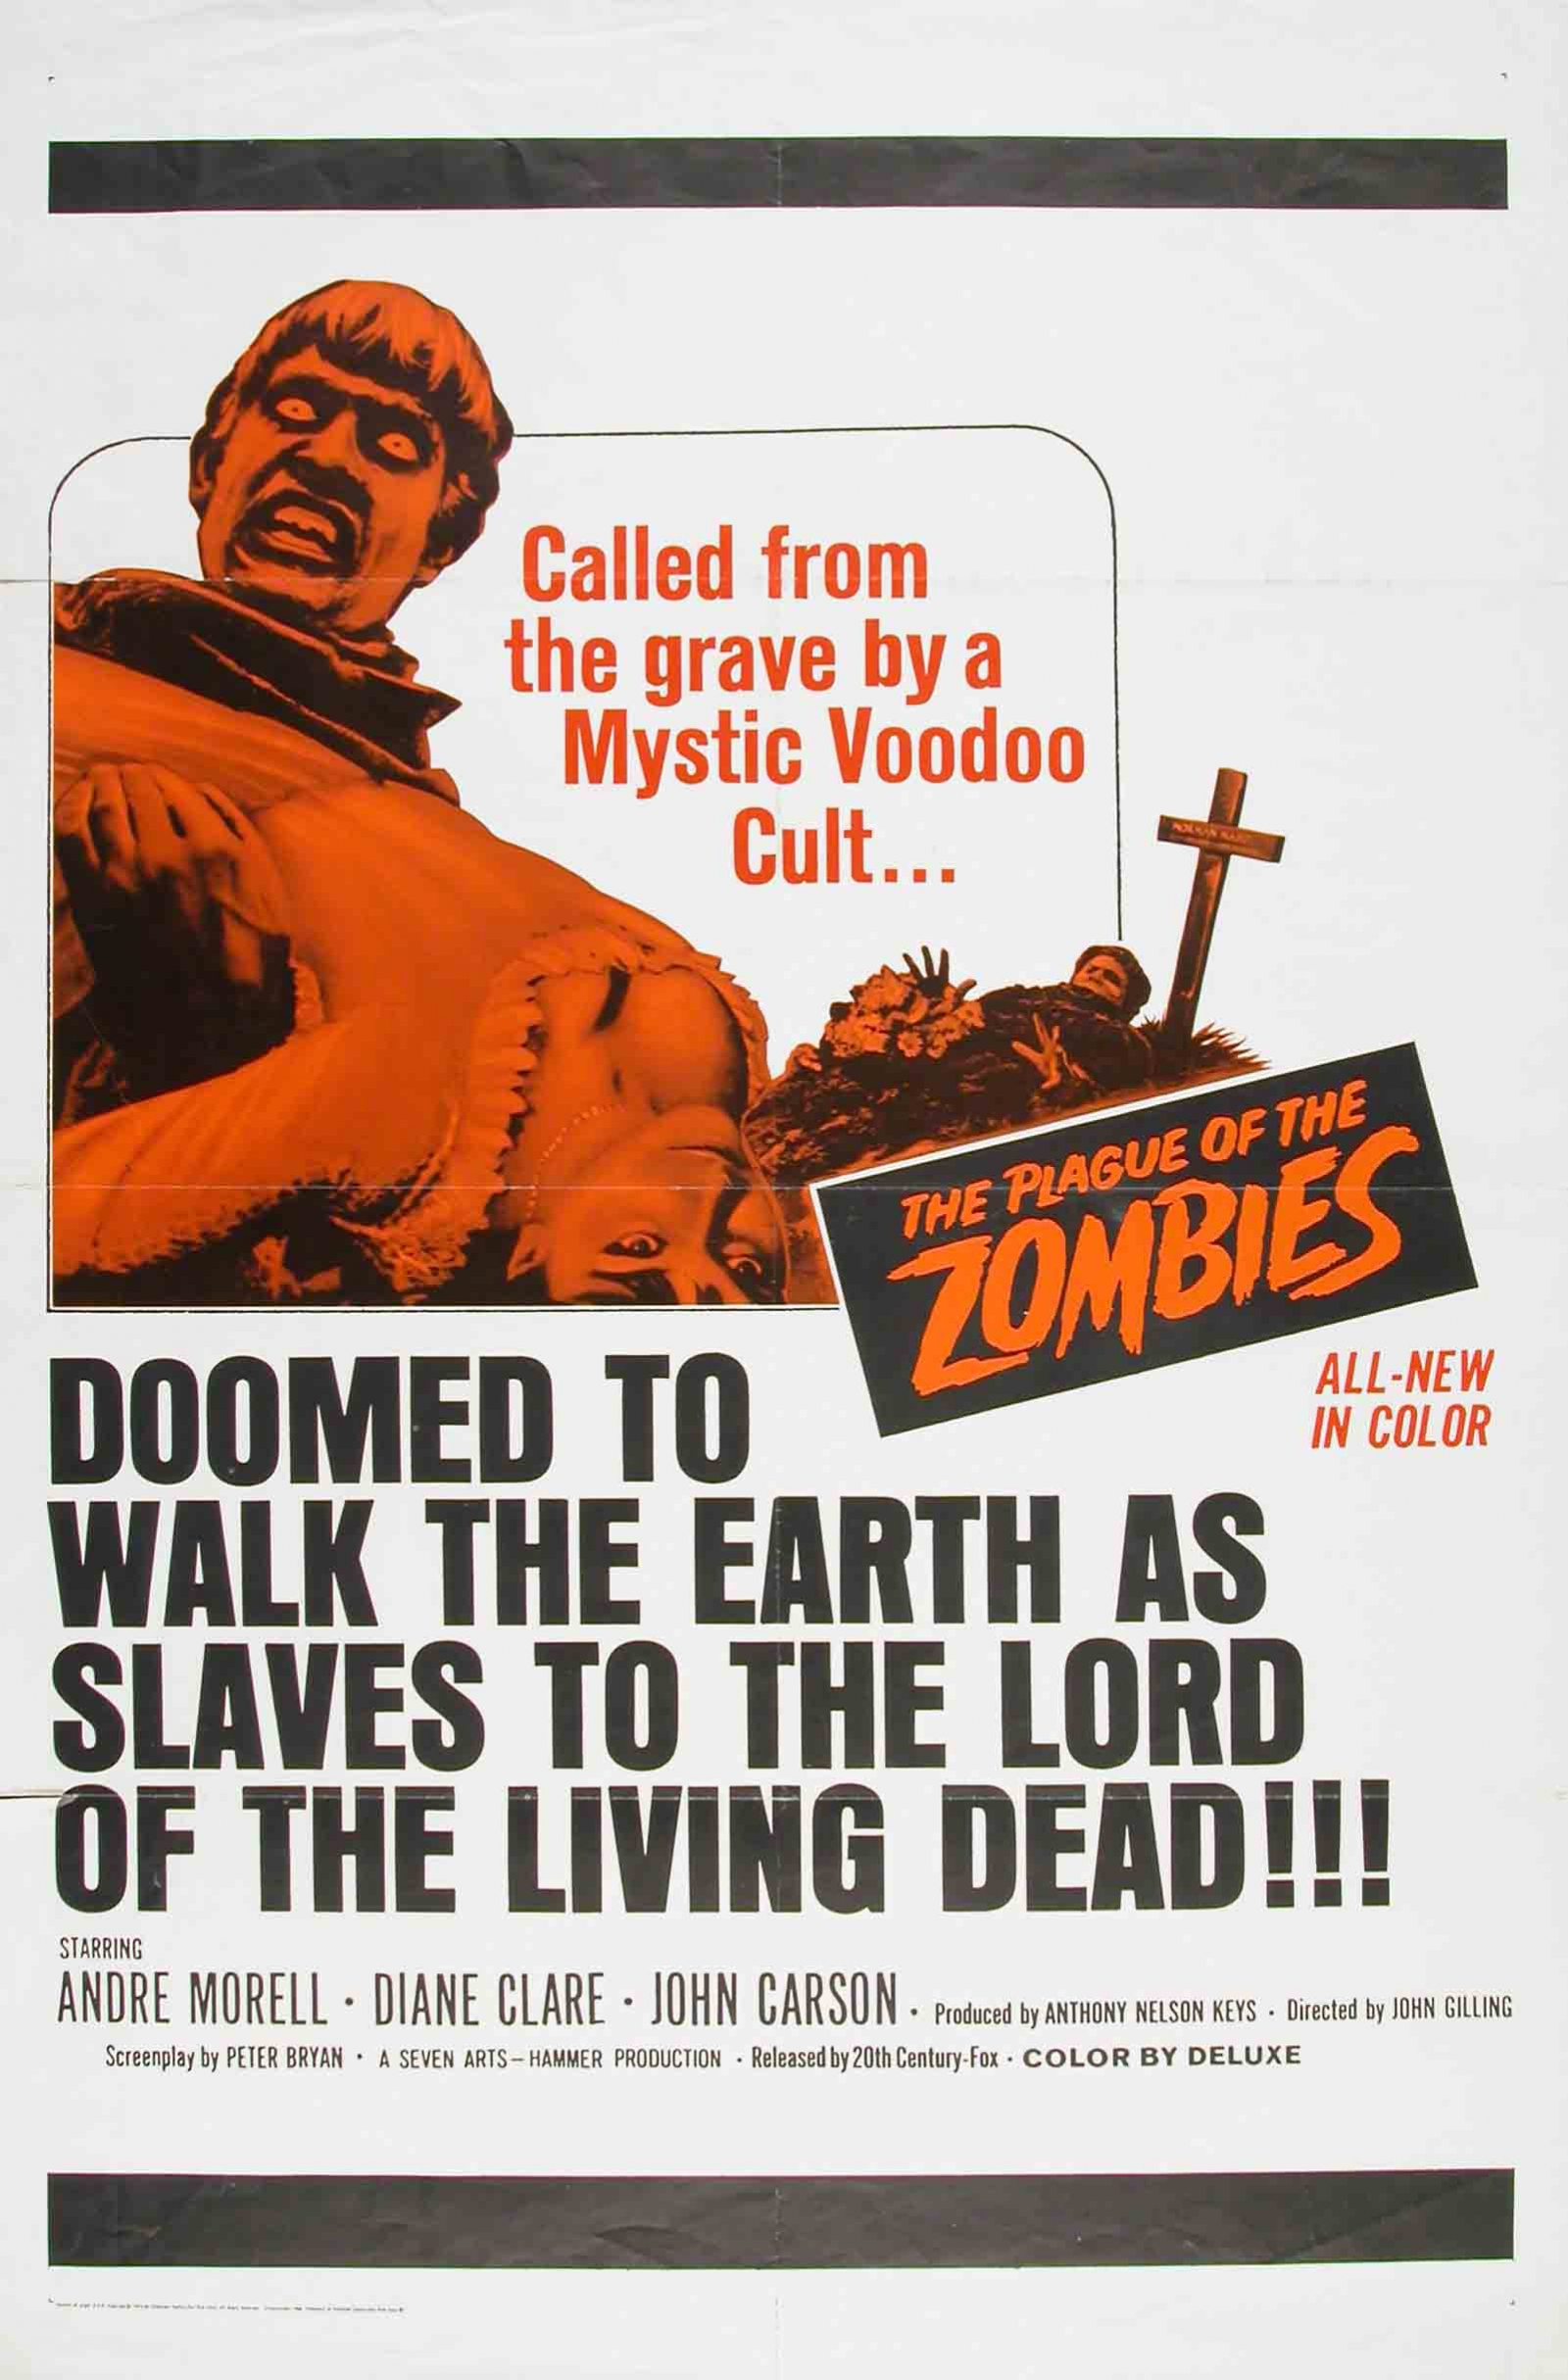 Plague of the Zombies poster.